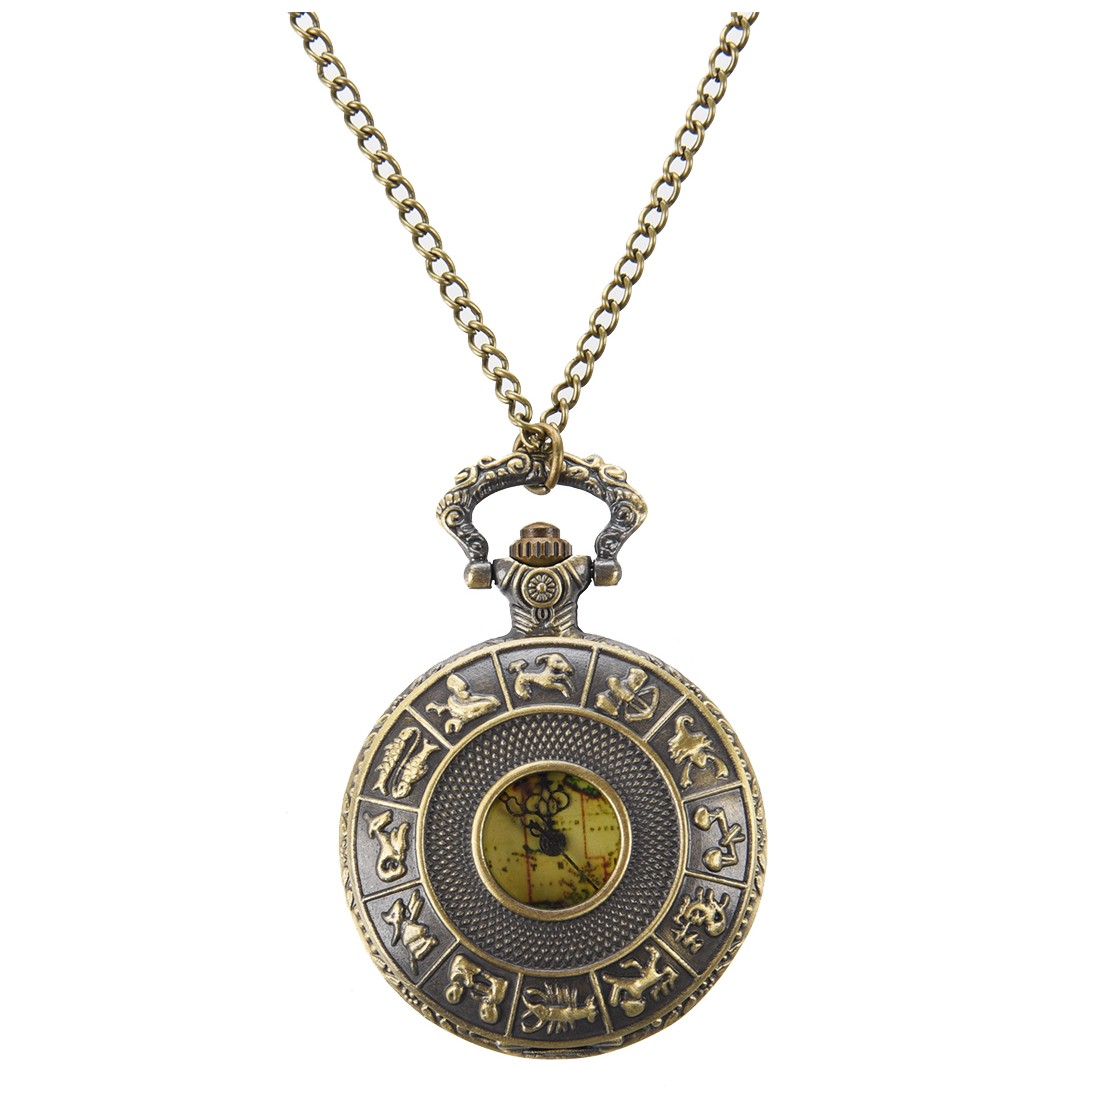 Vintage Old World Map Travelers Pocket Watch Necklace Gift on chain (Australia)